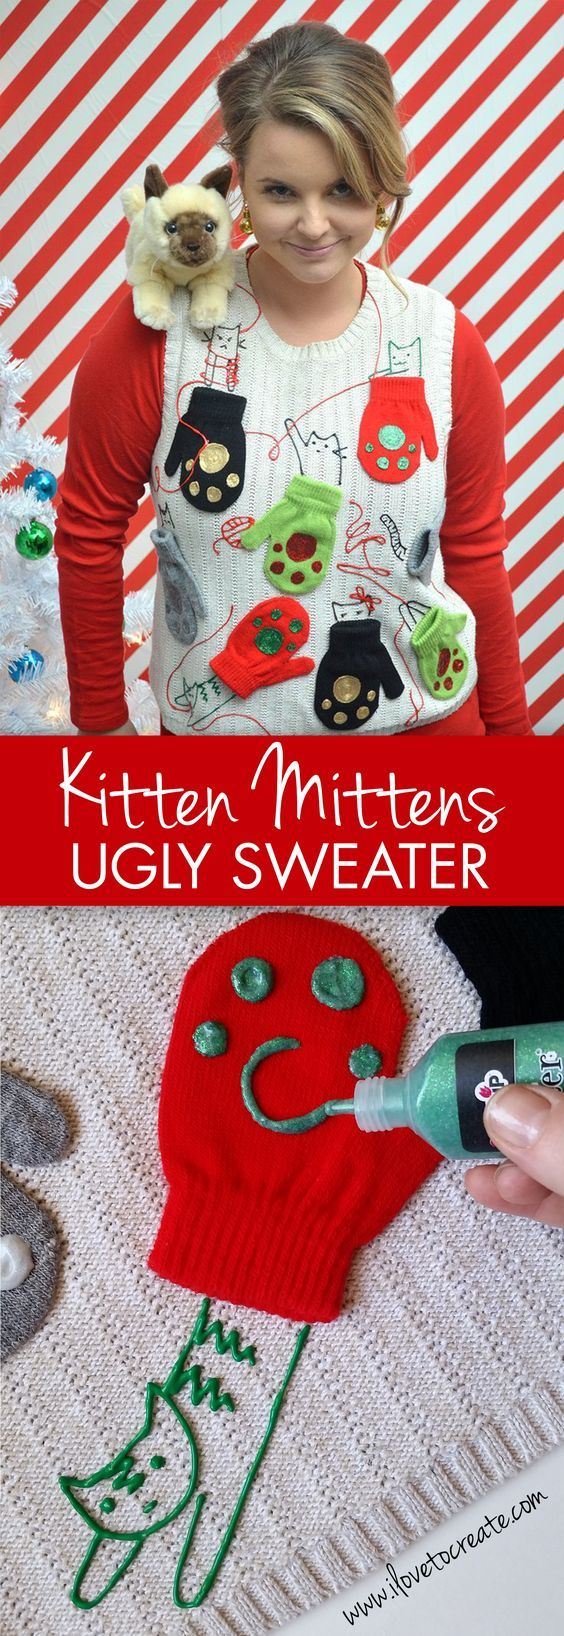 51 ugly christmas sweater ideas so you can be gaudy and festive kittens and mittens ugly sweaters solutioingenieria Gallery